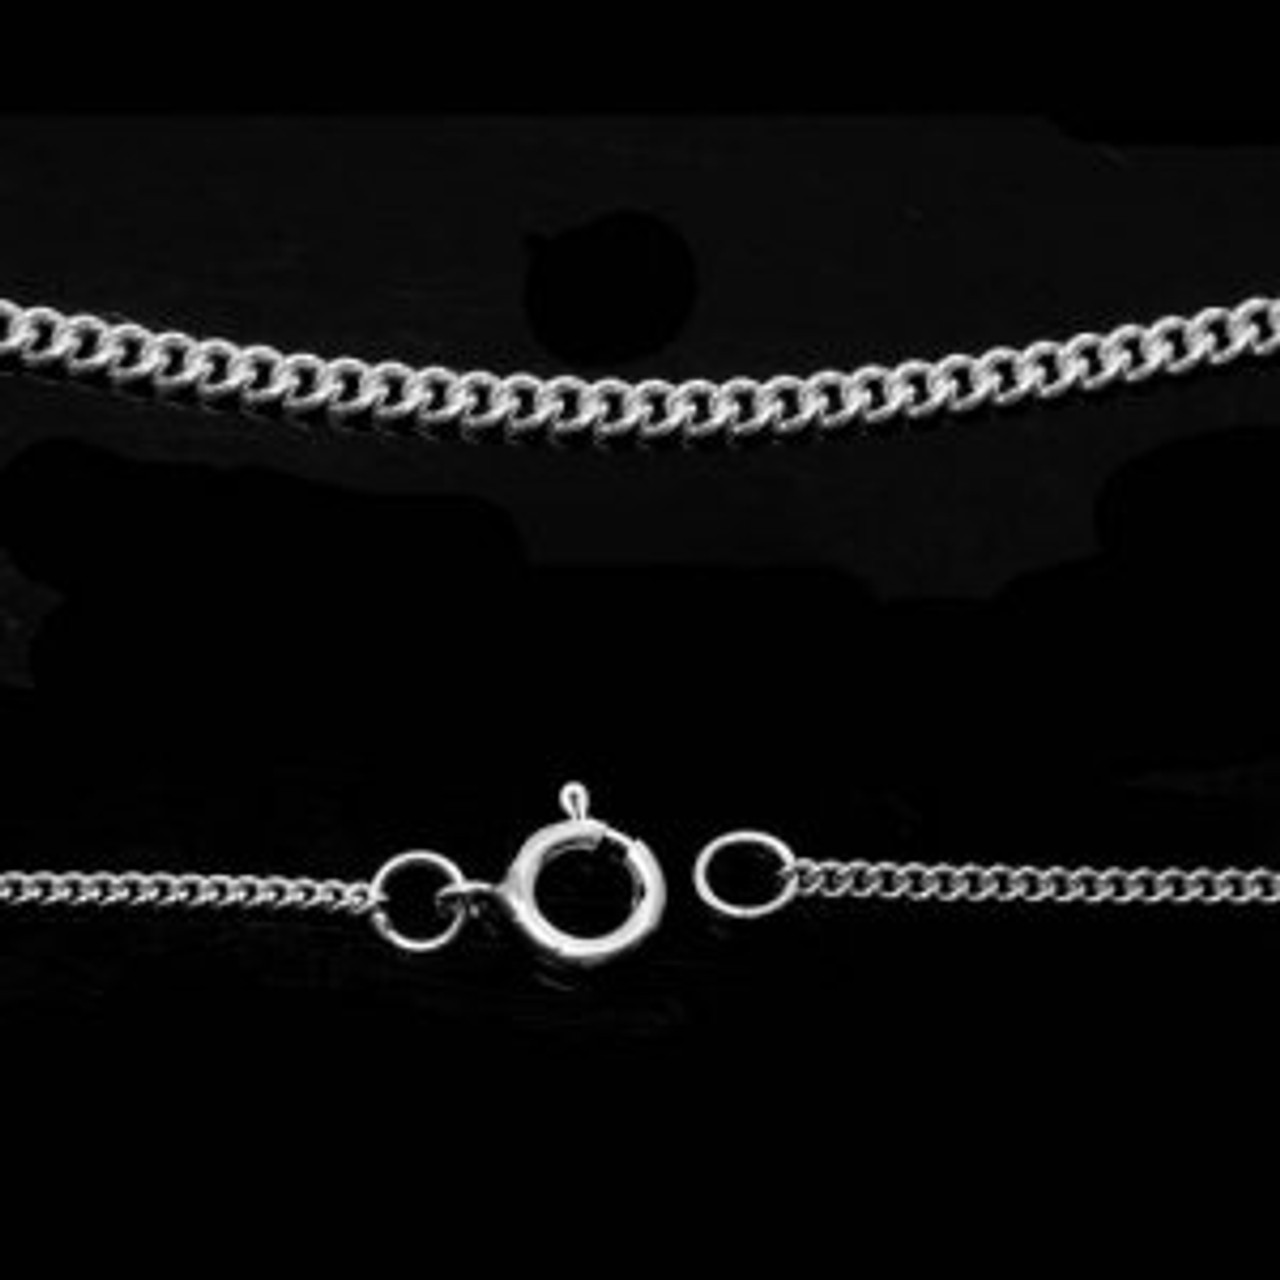 Sterling Silver Classic Chain included